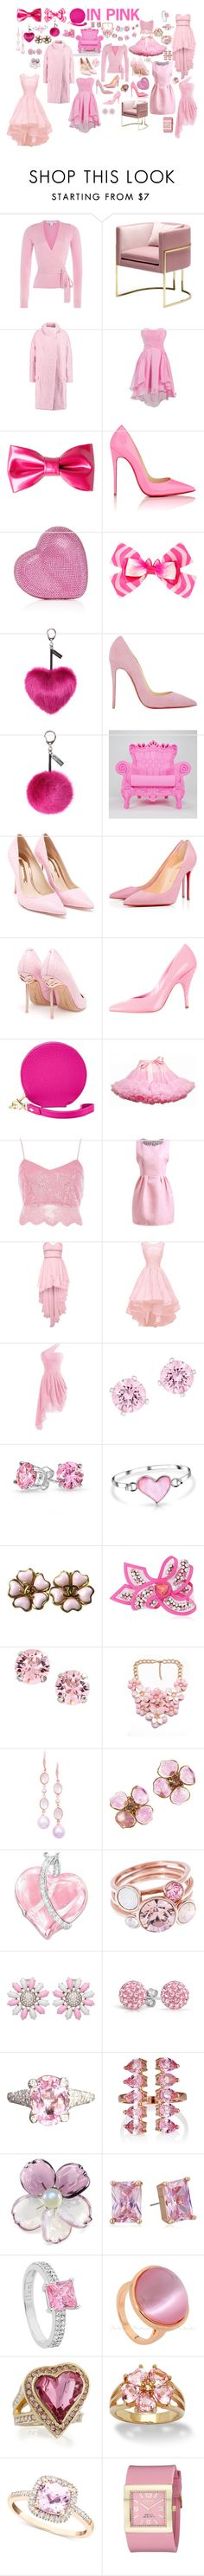 in pink by luisa-trujillo on Polyvore featuring moda, Diane Von Furstenberg, River Island, Just Cavalli, Sophia Webster, Christian Louboutin, Moschino, FOSSIL, Judith Leiber and Invicta